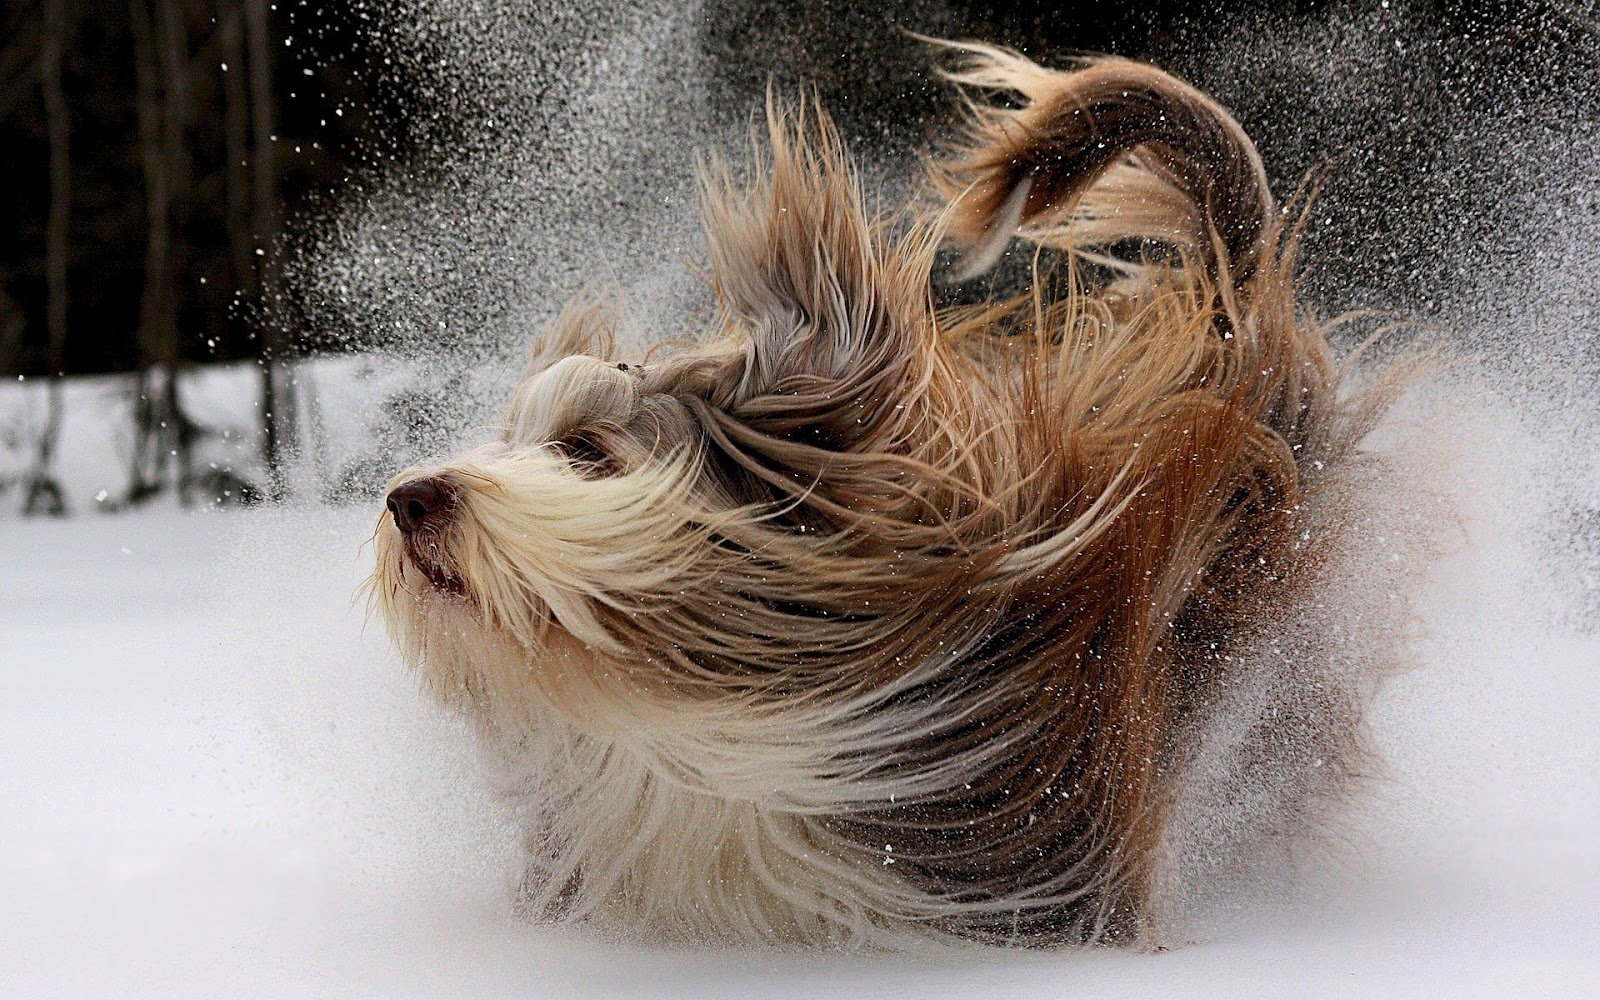 HD animal wallpaper of a dog playing in the snow Dog wallpaper 1600x1000